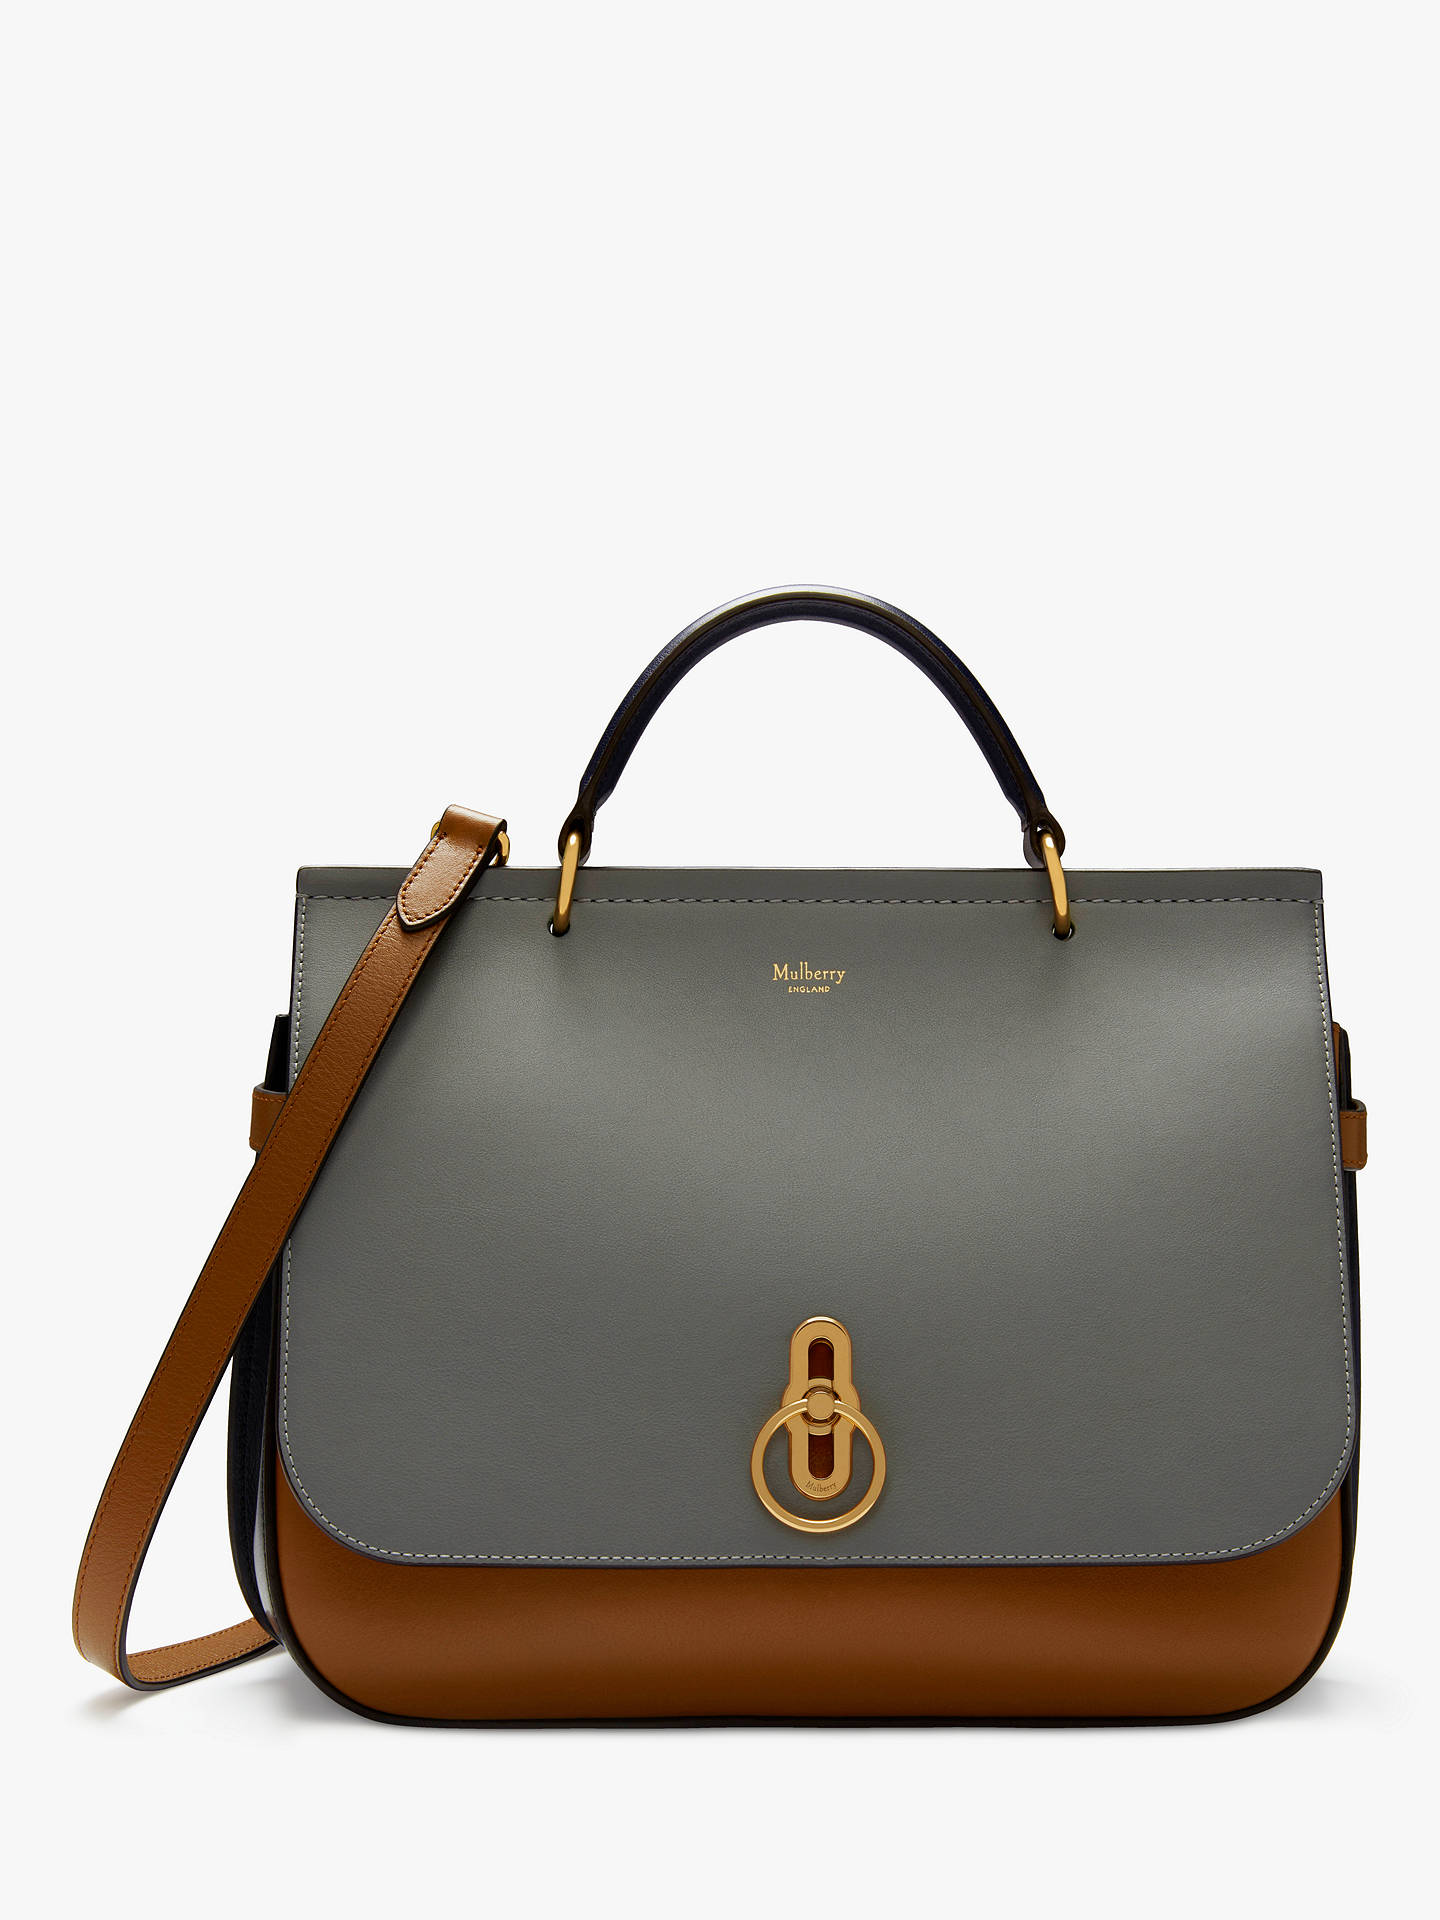 45c611cddb1a ... bag women shoulder bag27cm e3fad 61cfc  low price buymulberry amberley  silk calf large leather satchel smoke grey tobacco brown online at johnlewis